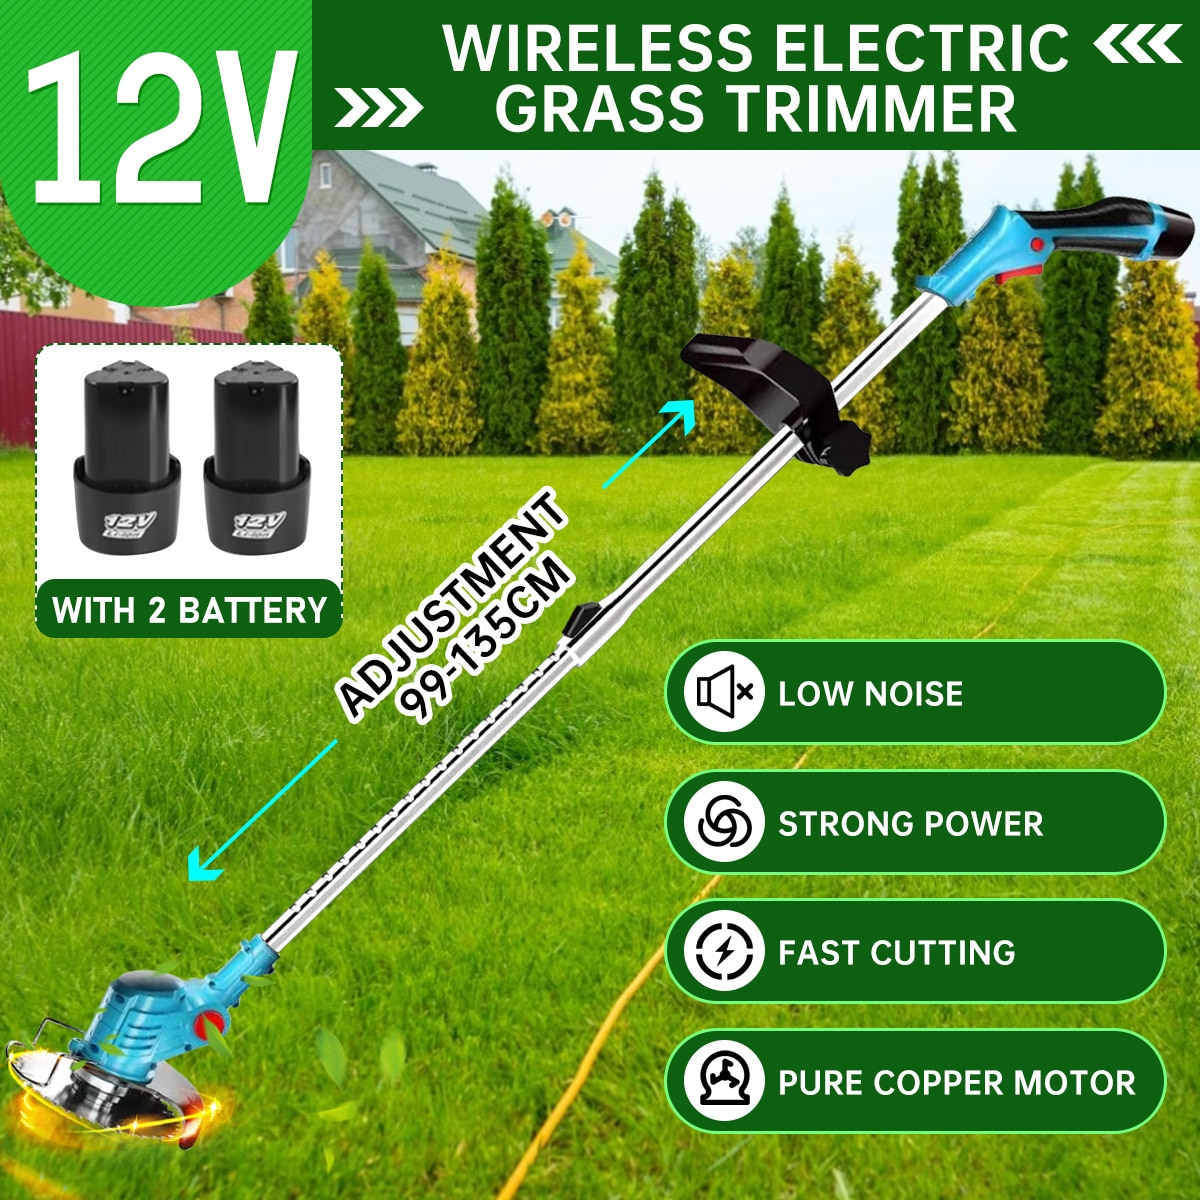 12V Electric Lawn Mower Cordless Grass Hedge Trimmer Adjustable Handheld Mowing Machine Garden Tools with 1/2pcs Li-Ion Battery